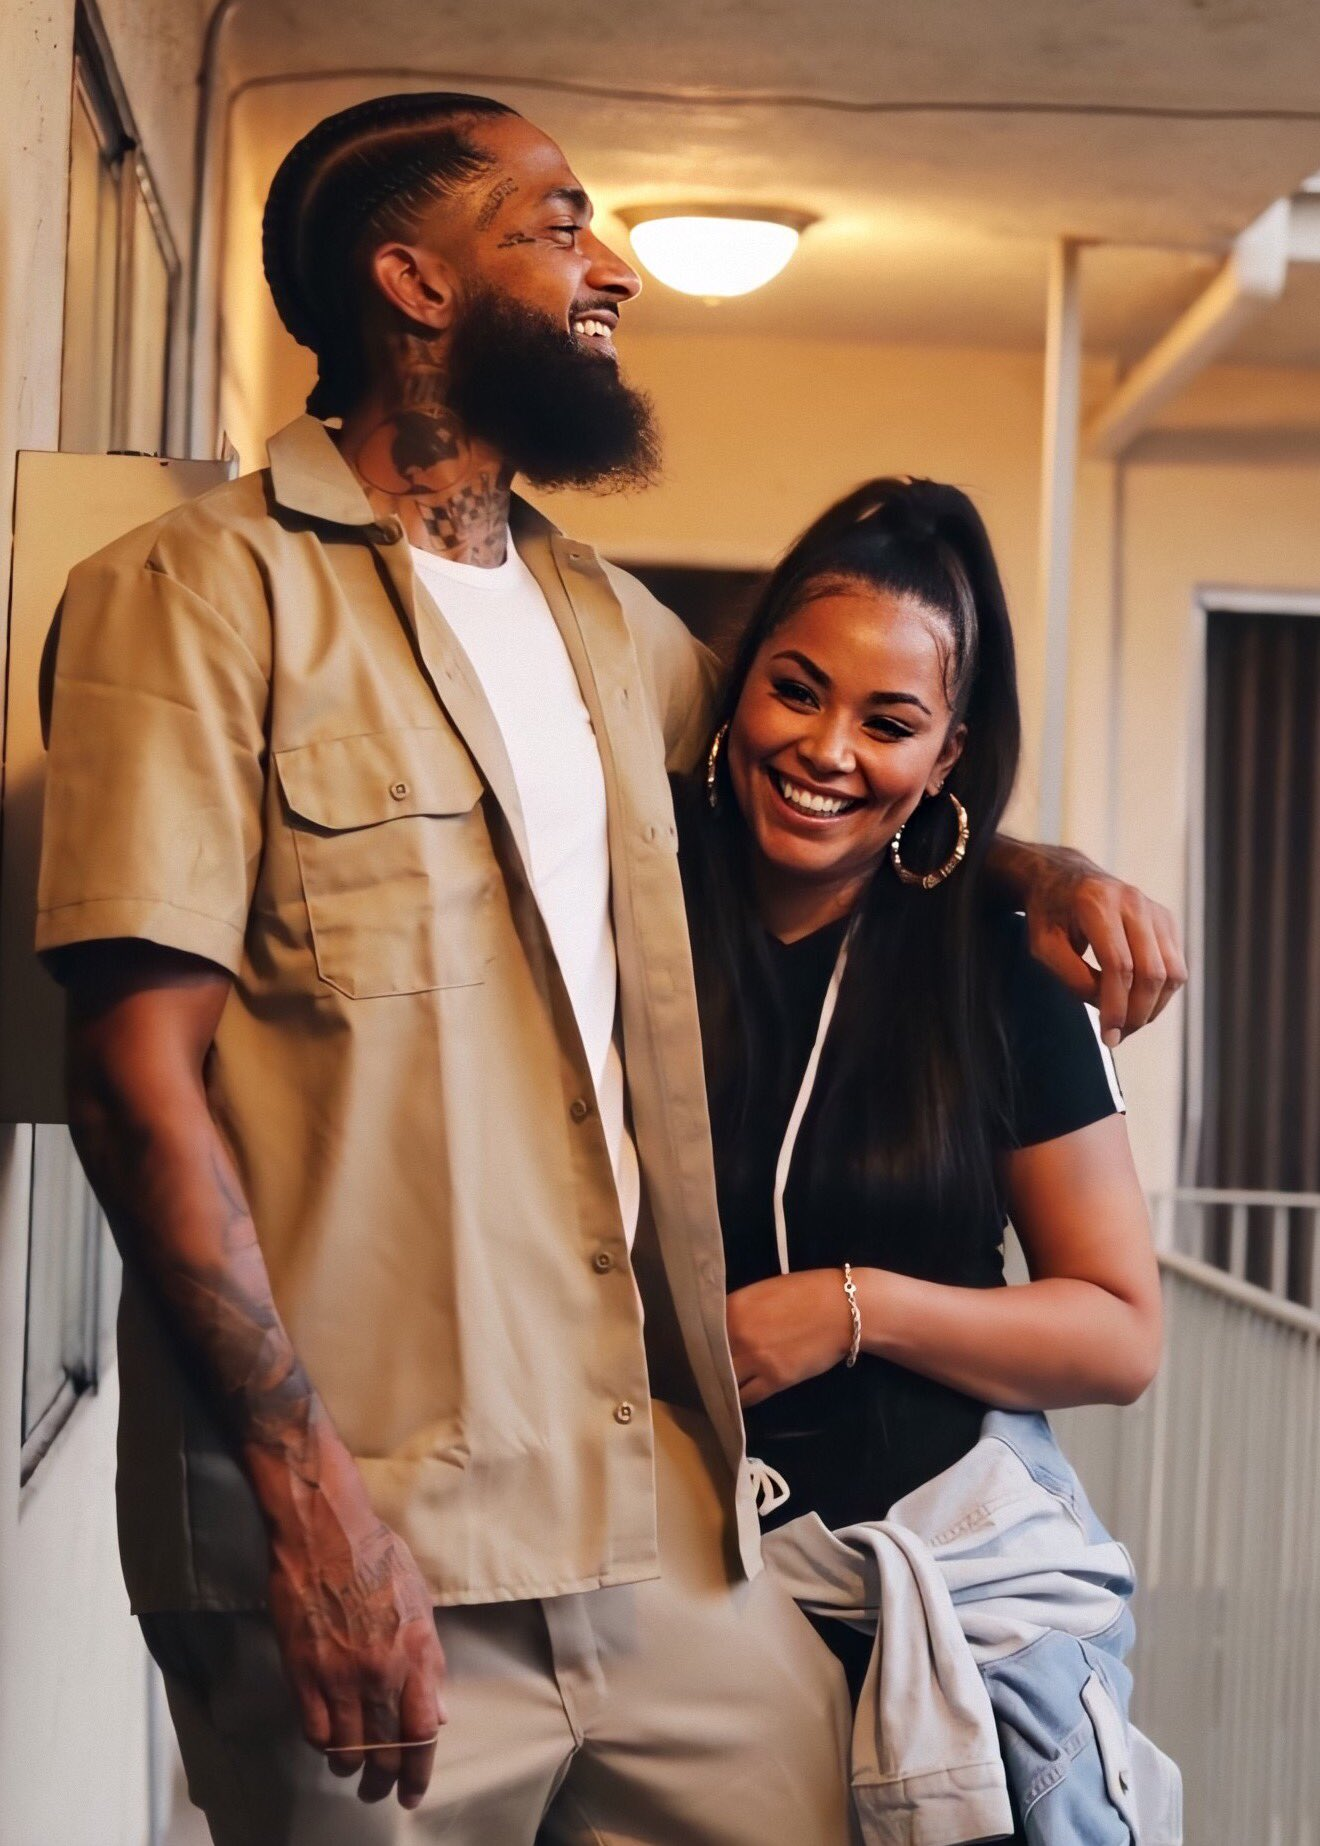 Nipsey Hussle quotes that will inspire you to succeed. We all need motivation and these Nipsey Hussle lyrics are perfect for that. nipsey hussle quotes, nipsey hussle quotes about love, nipsey hussle quotes from songs, nipsey hussle quotes victory lap, nipsey hussle best quotes, nipsey hussle songs, nipsey hussle racks in the middle, nipsey hussle brother, nipsey hussle braids, nipsey hussle death, nipsey hussle hoodie, best nipsey hussle songs, nipsey hussle lyrics you will love.